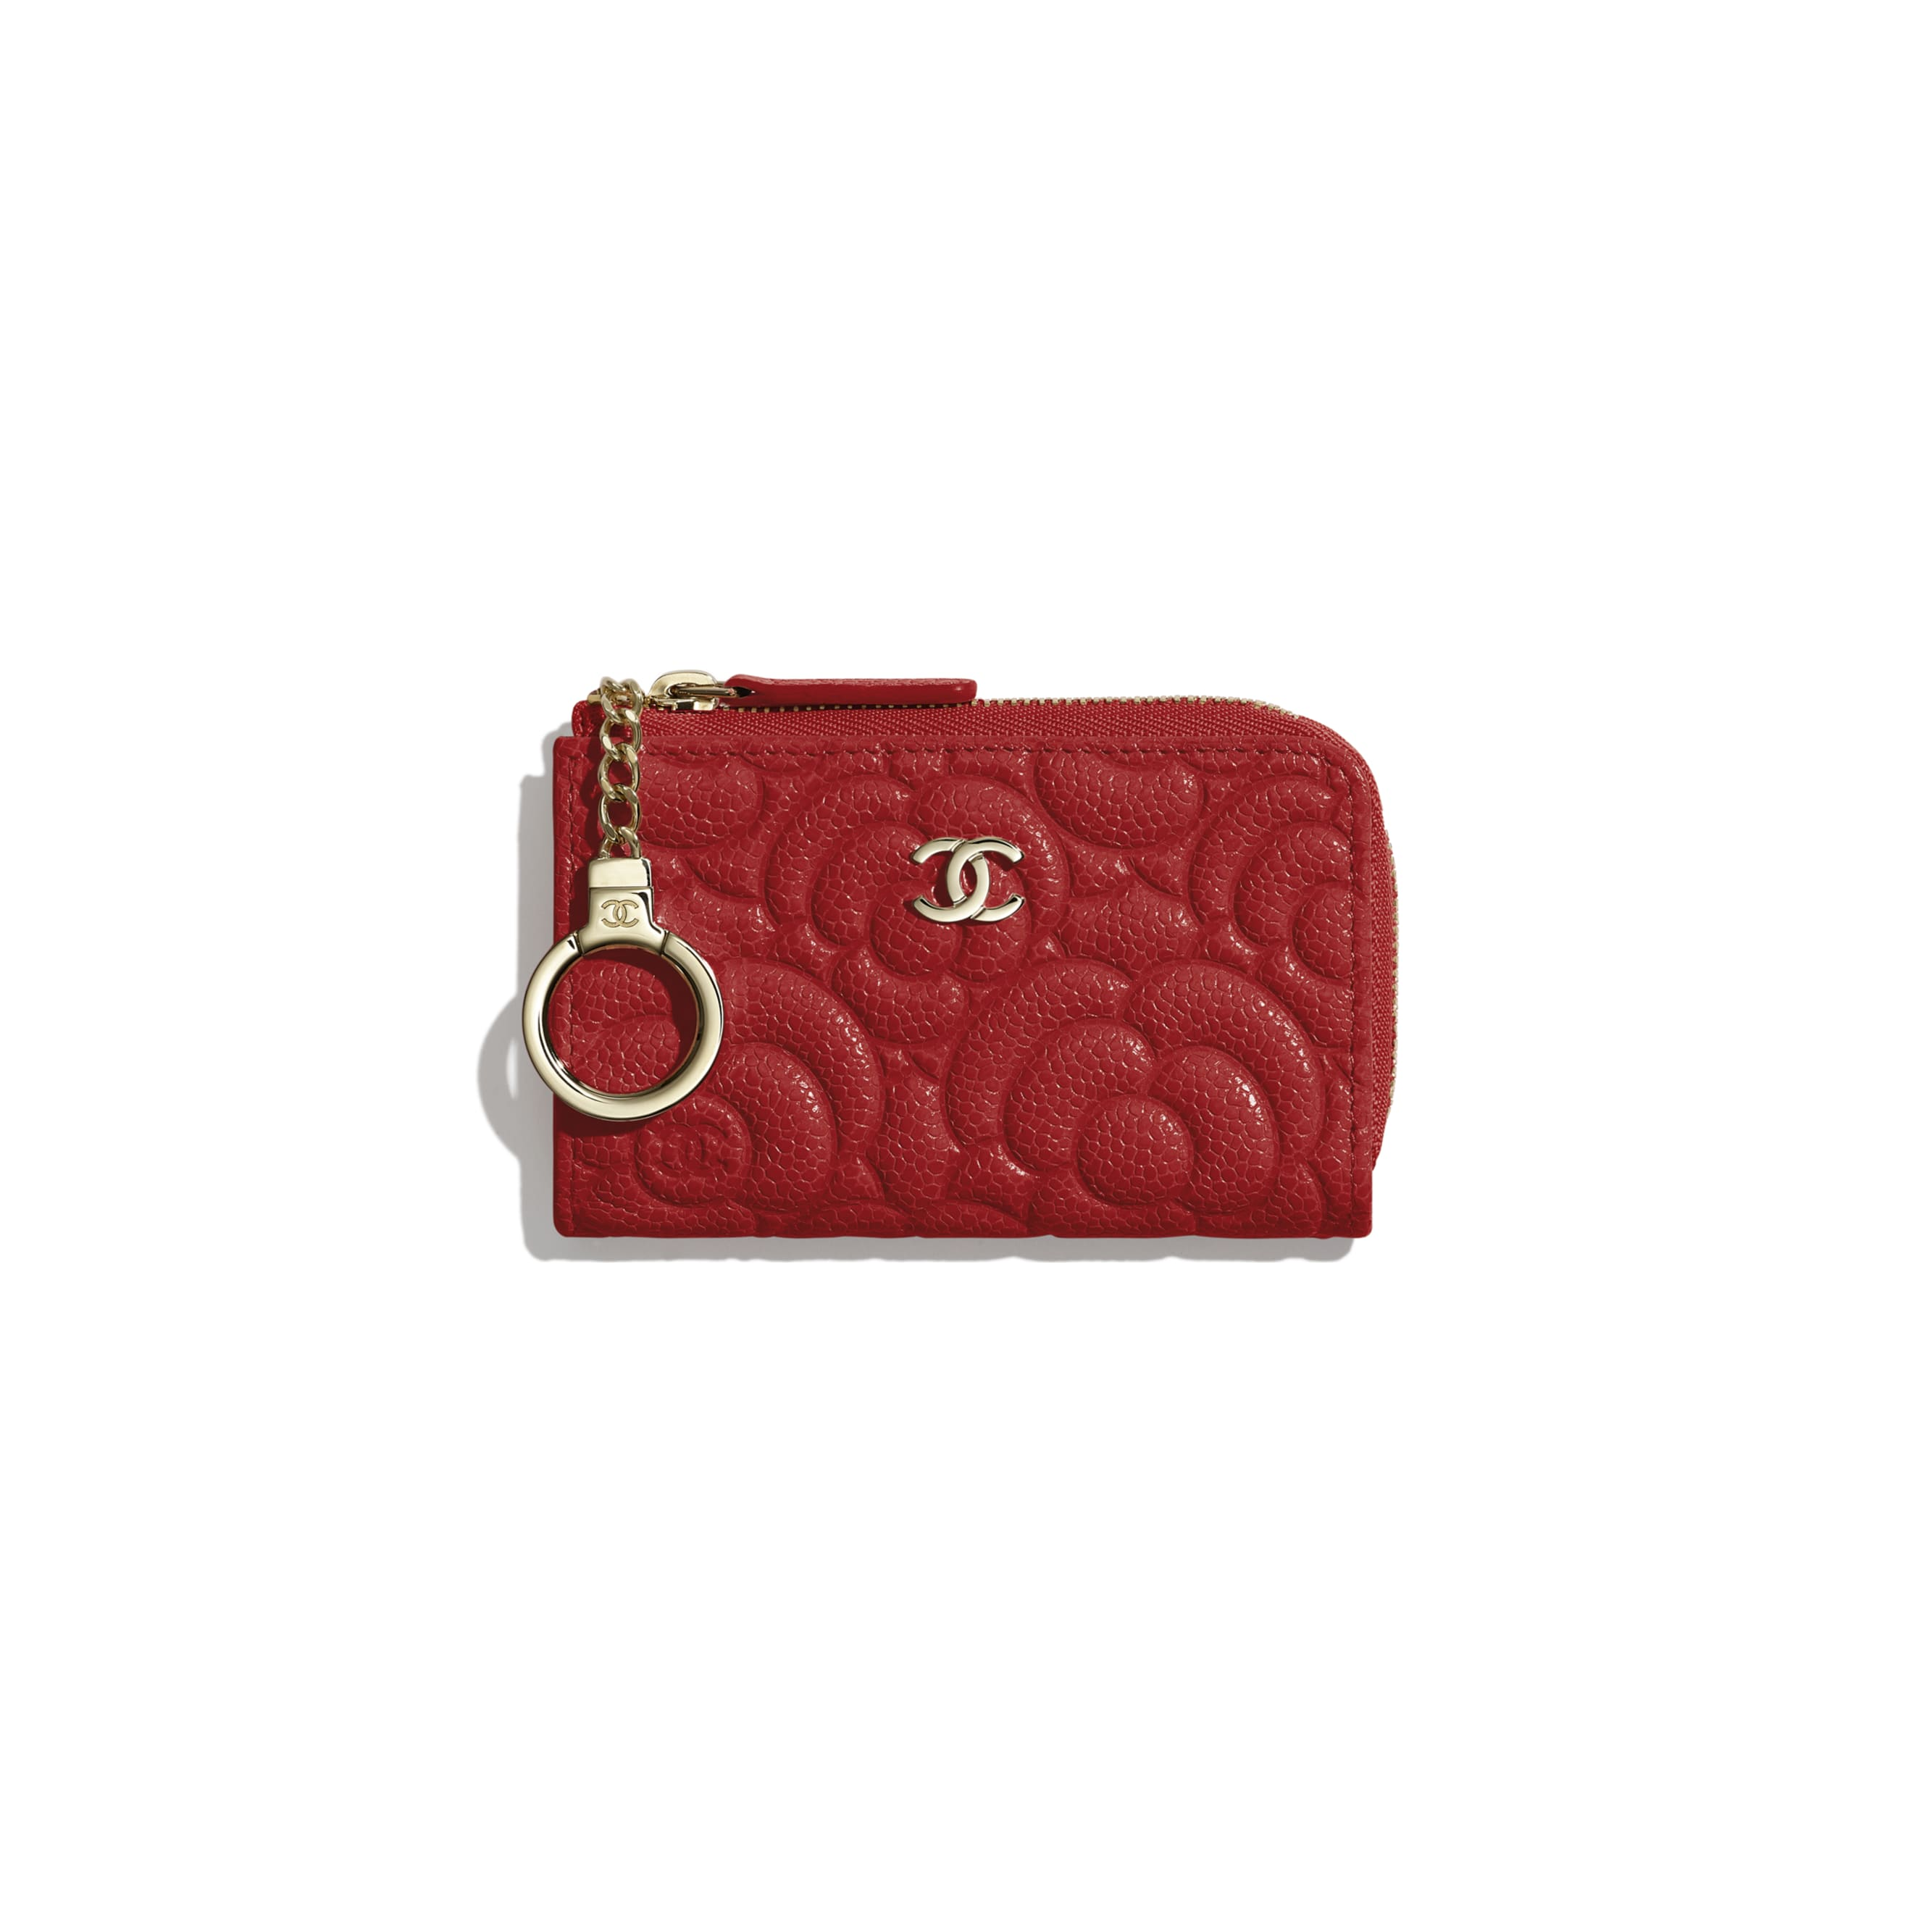 Key Holder - Red - Grained Shiny Calfskin & Gold-Tone Metal - Default view - see standard sized version